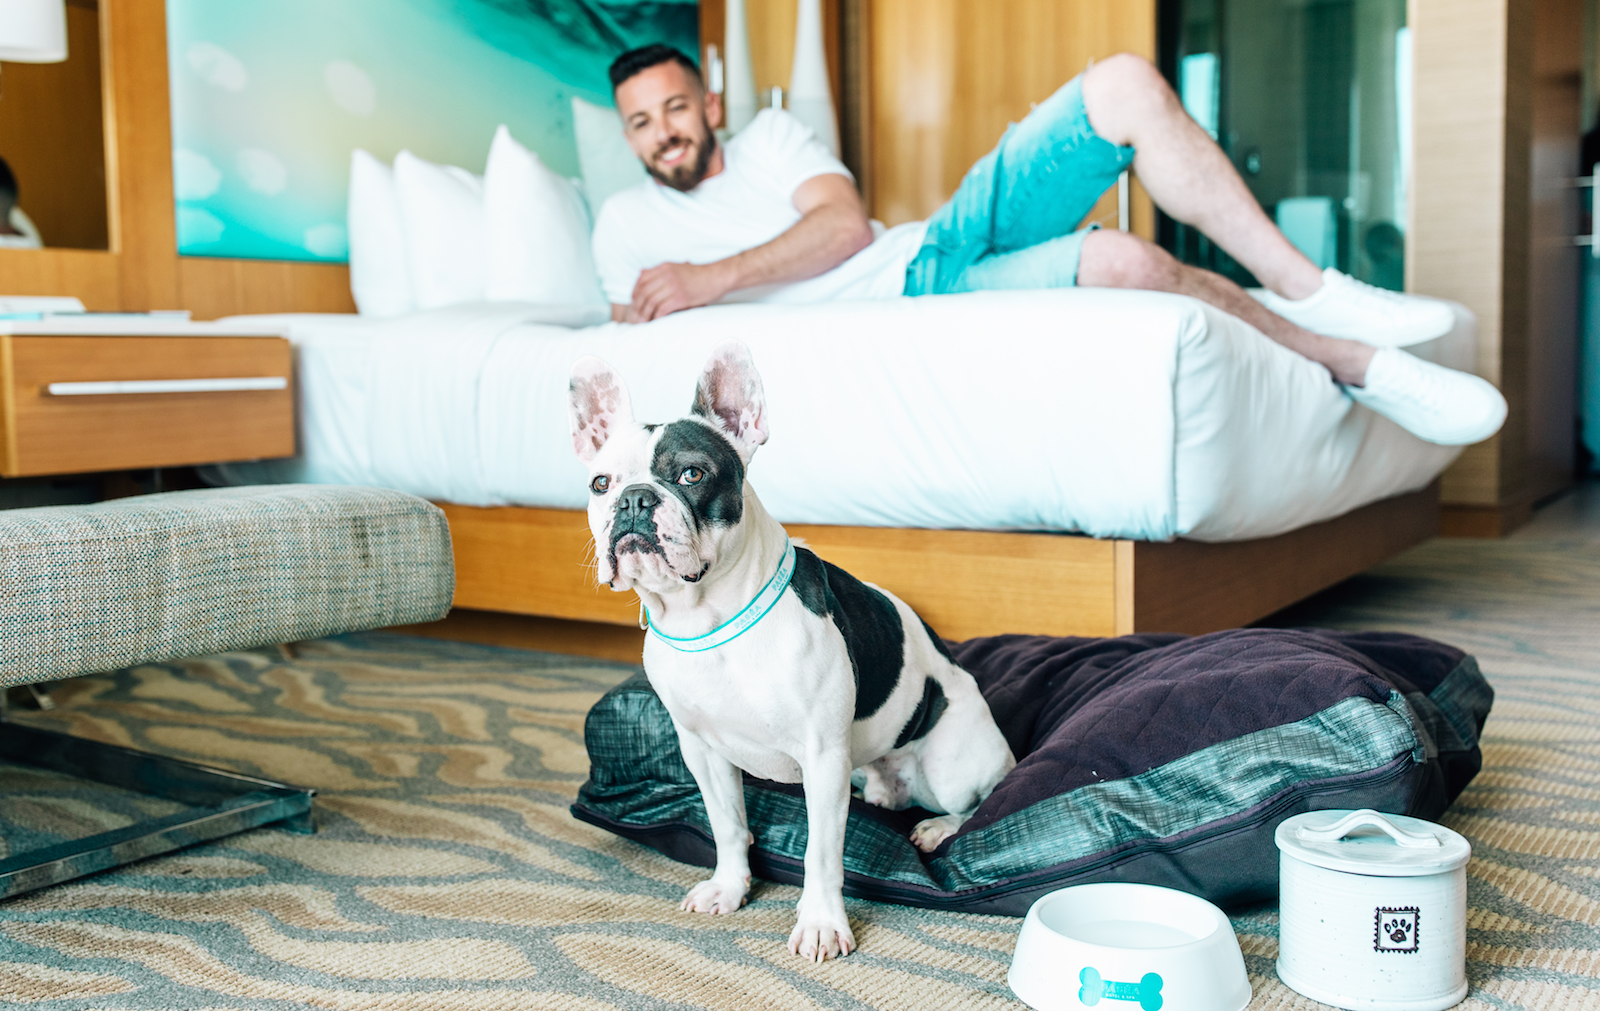 The Best Dog-friendly Hotels in the U.S.